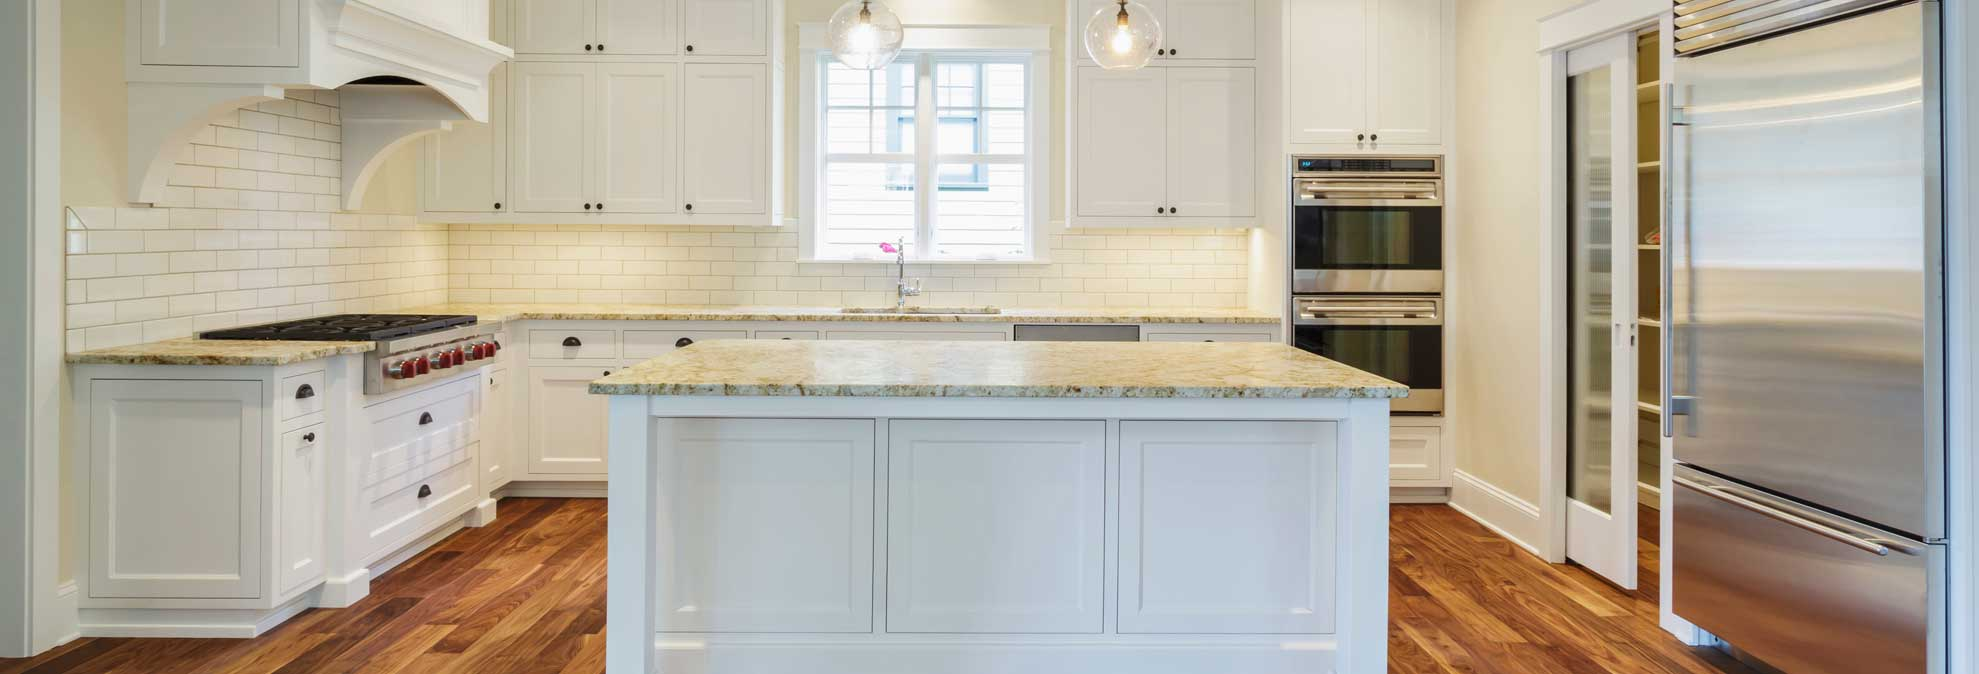 Kitchen Remodel Mistakes kitchen remodel mistakes that will bust your budget - consumer reports